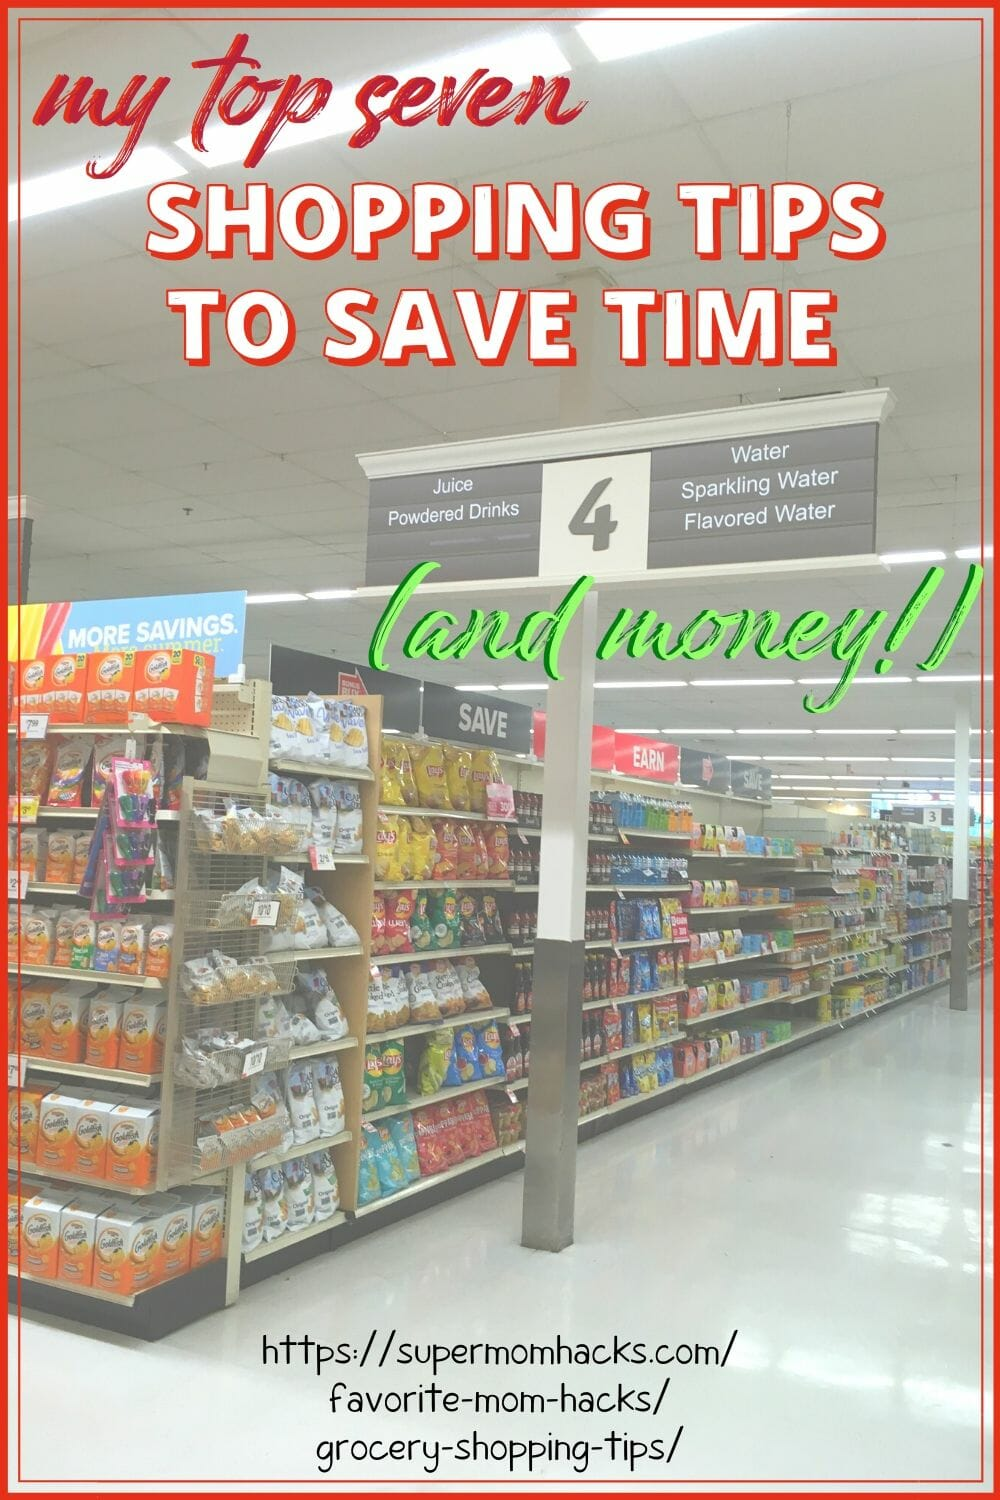 Need some tried-and-true supermarket shopping hacks? These grocery shopping tips help busy parents save both time AND money on every shopping trip!